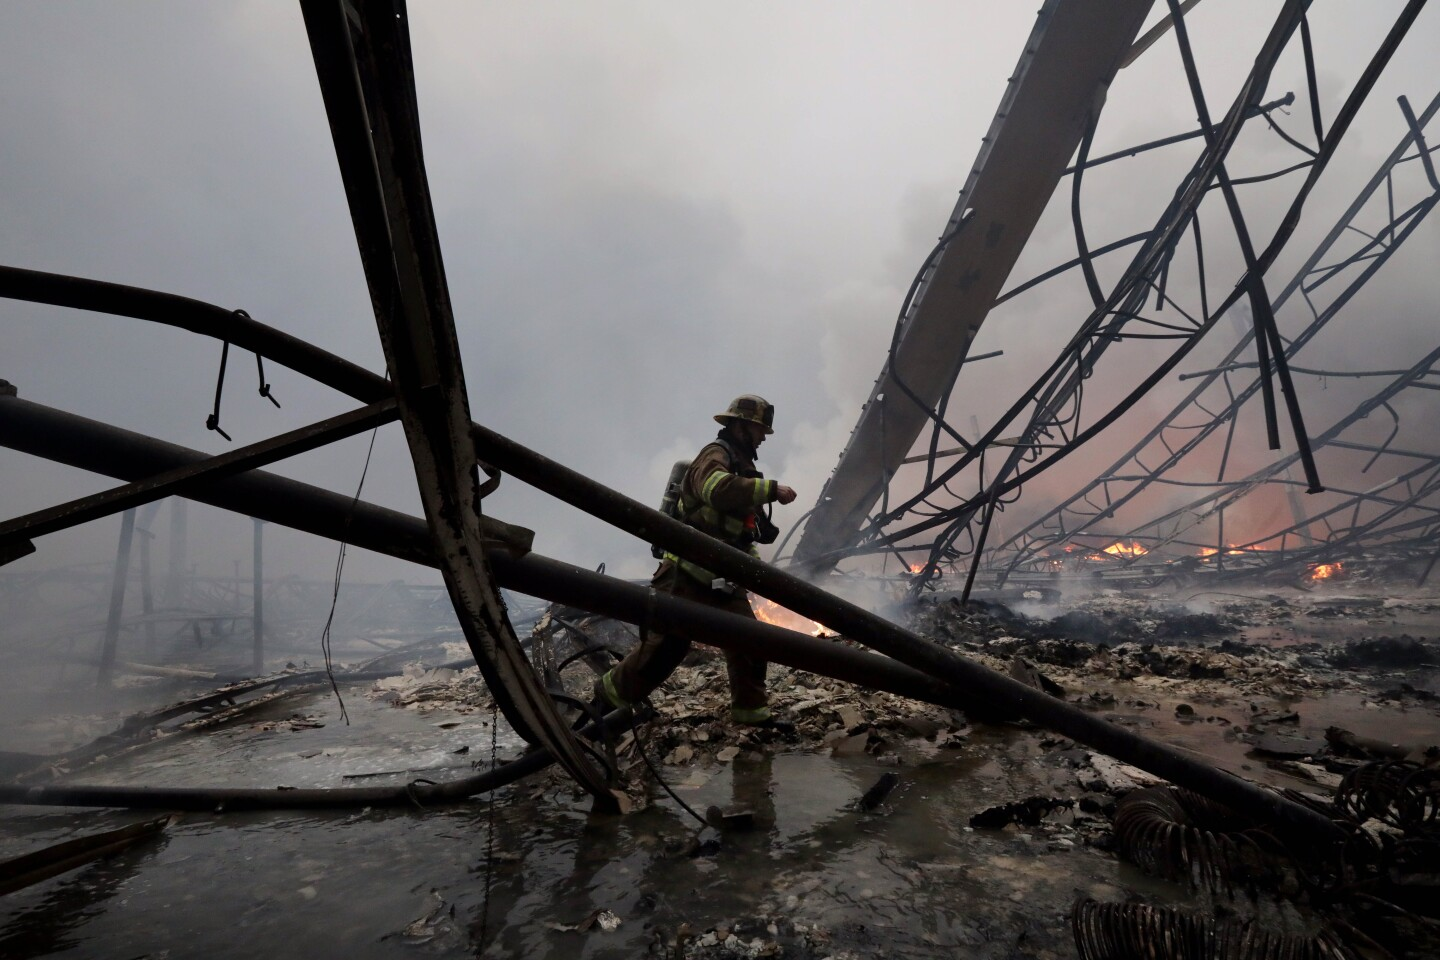 REDLANDS CA JUNE 5, 2020 - Firefighters battle a 3-alarm fire at a large warehouse near the 10 Freeway in Redlands Friday, June 5, 2020. Irfan Khan / Los Angeles Times)